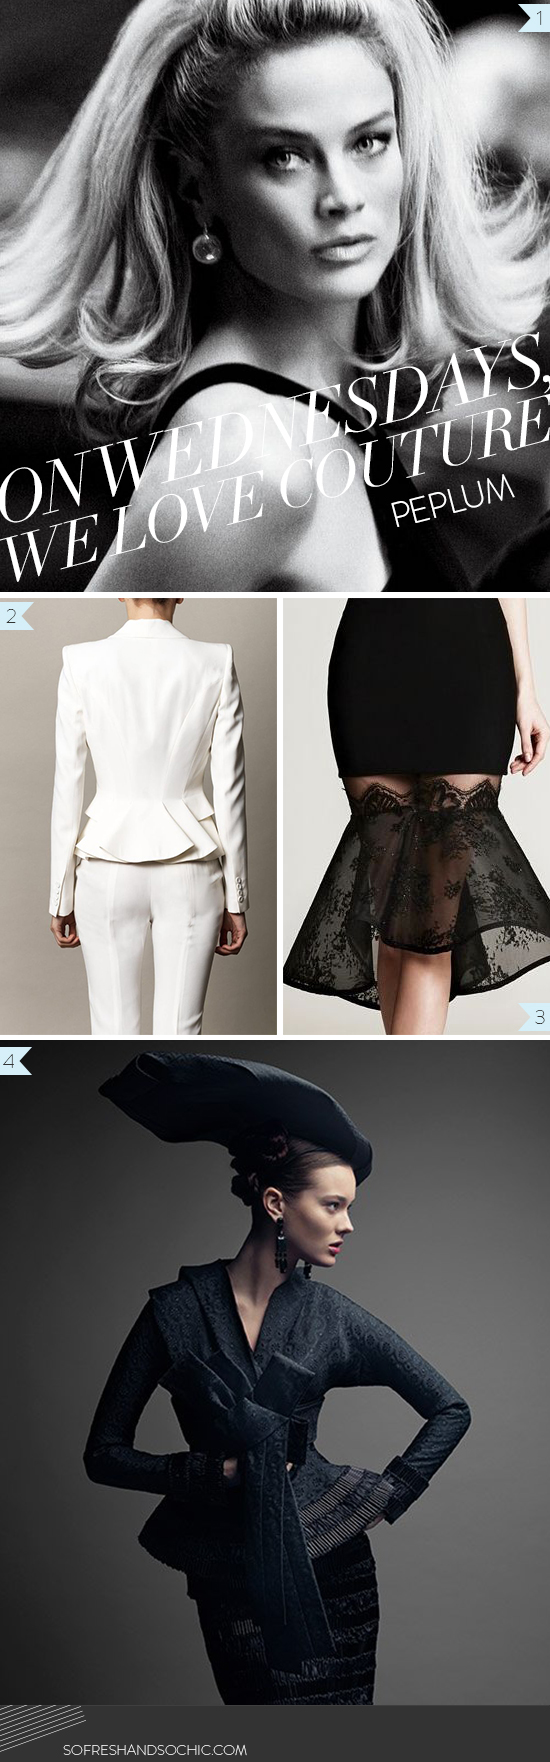 Spotted on So Fresh & So Chic: On Wednesdays, We Love Couture // Peplum // www.sofreshandsochic.com #sofreshandsochic